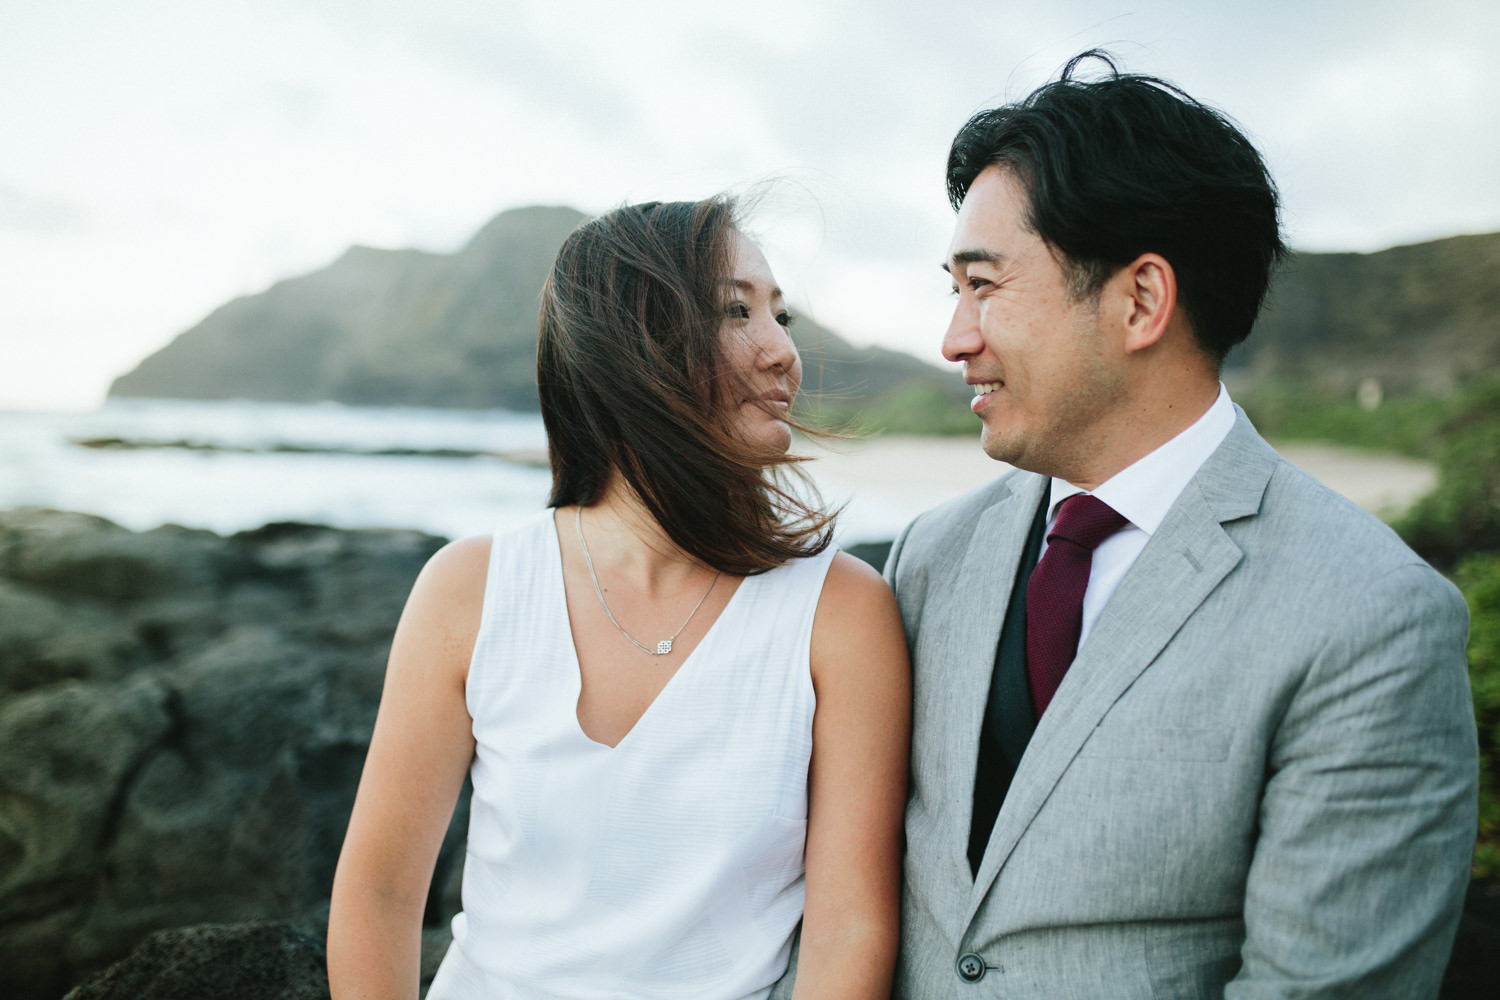 hawaiiweddingphotographer-3066.jpg